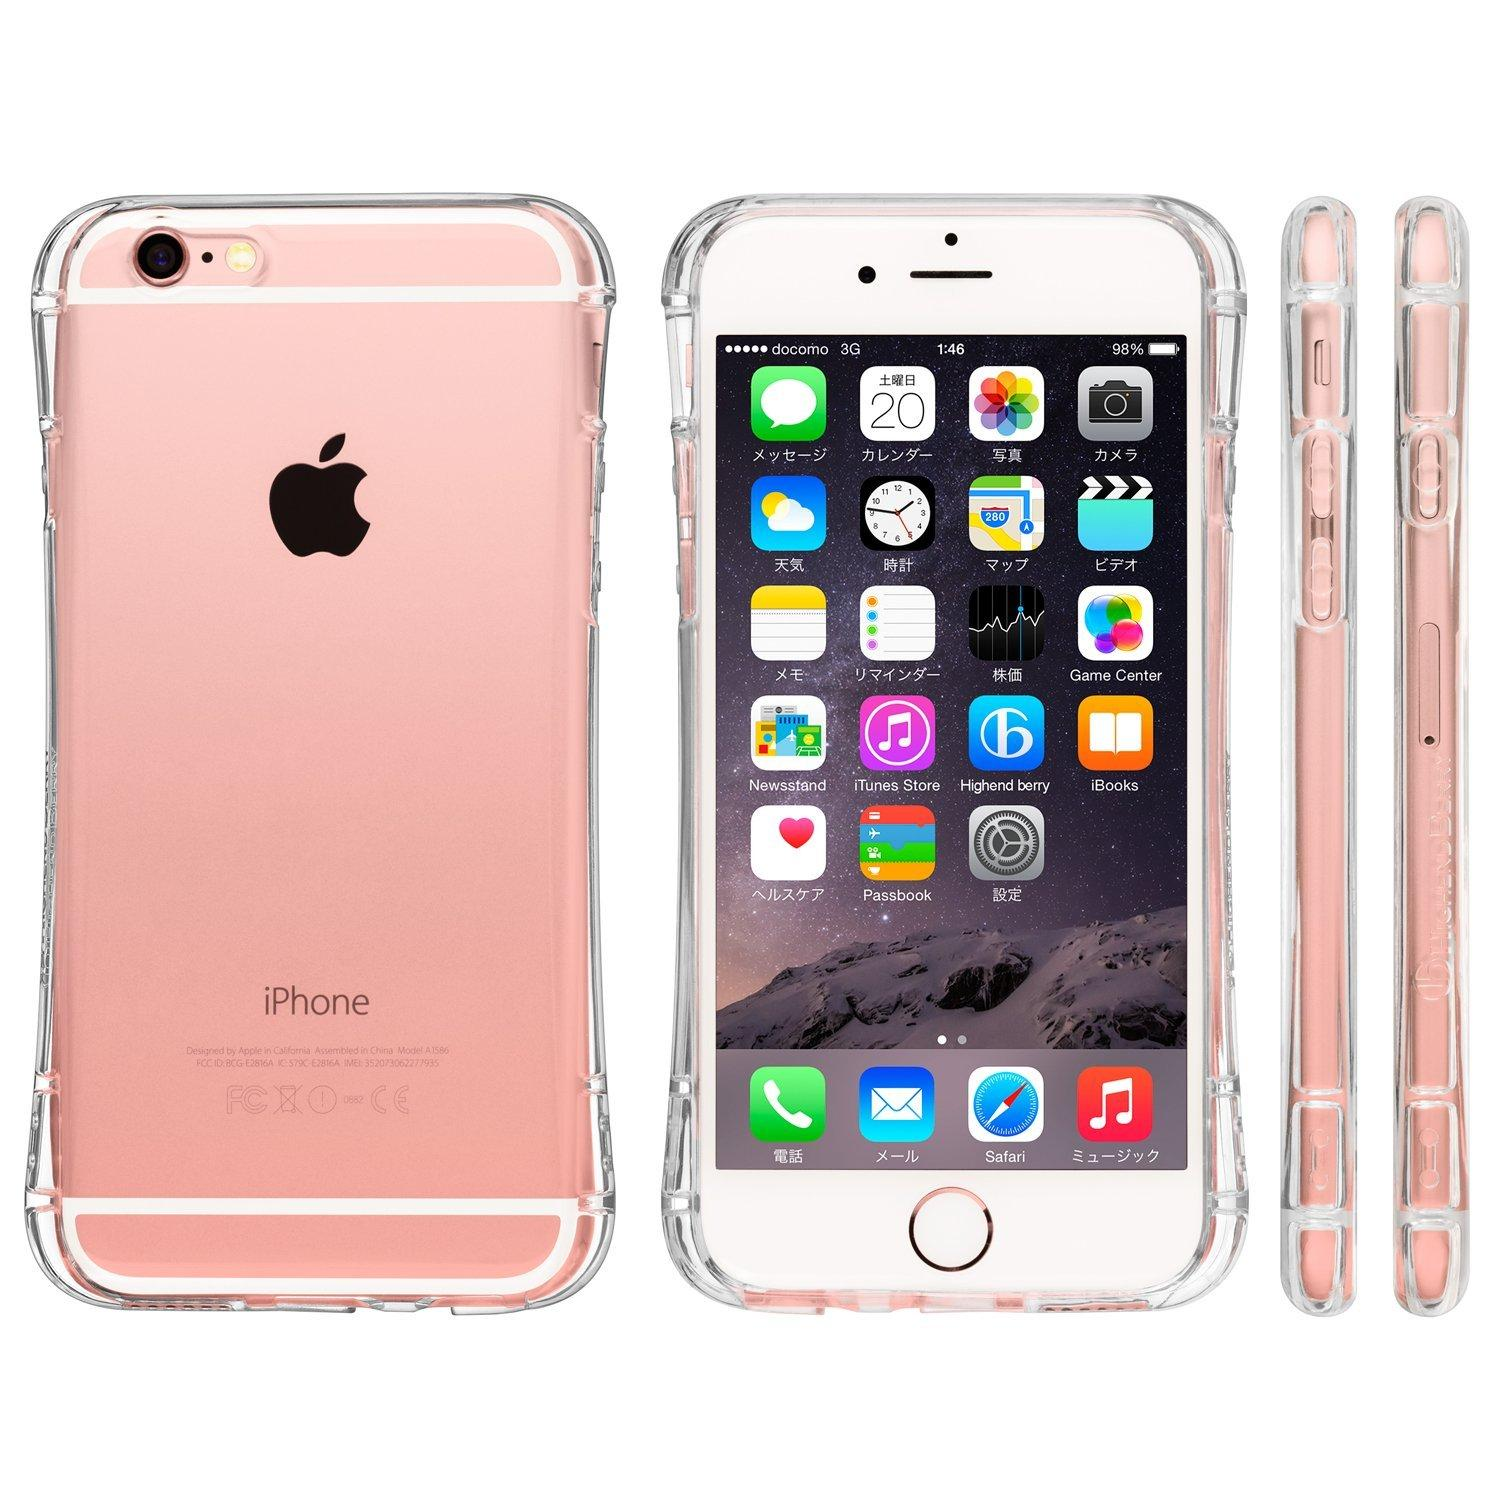 $14.99 iPhone 6/6s Highend Berry Original Soft TPU Clear Arc Case with Protective Caps